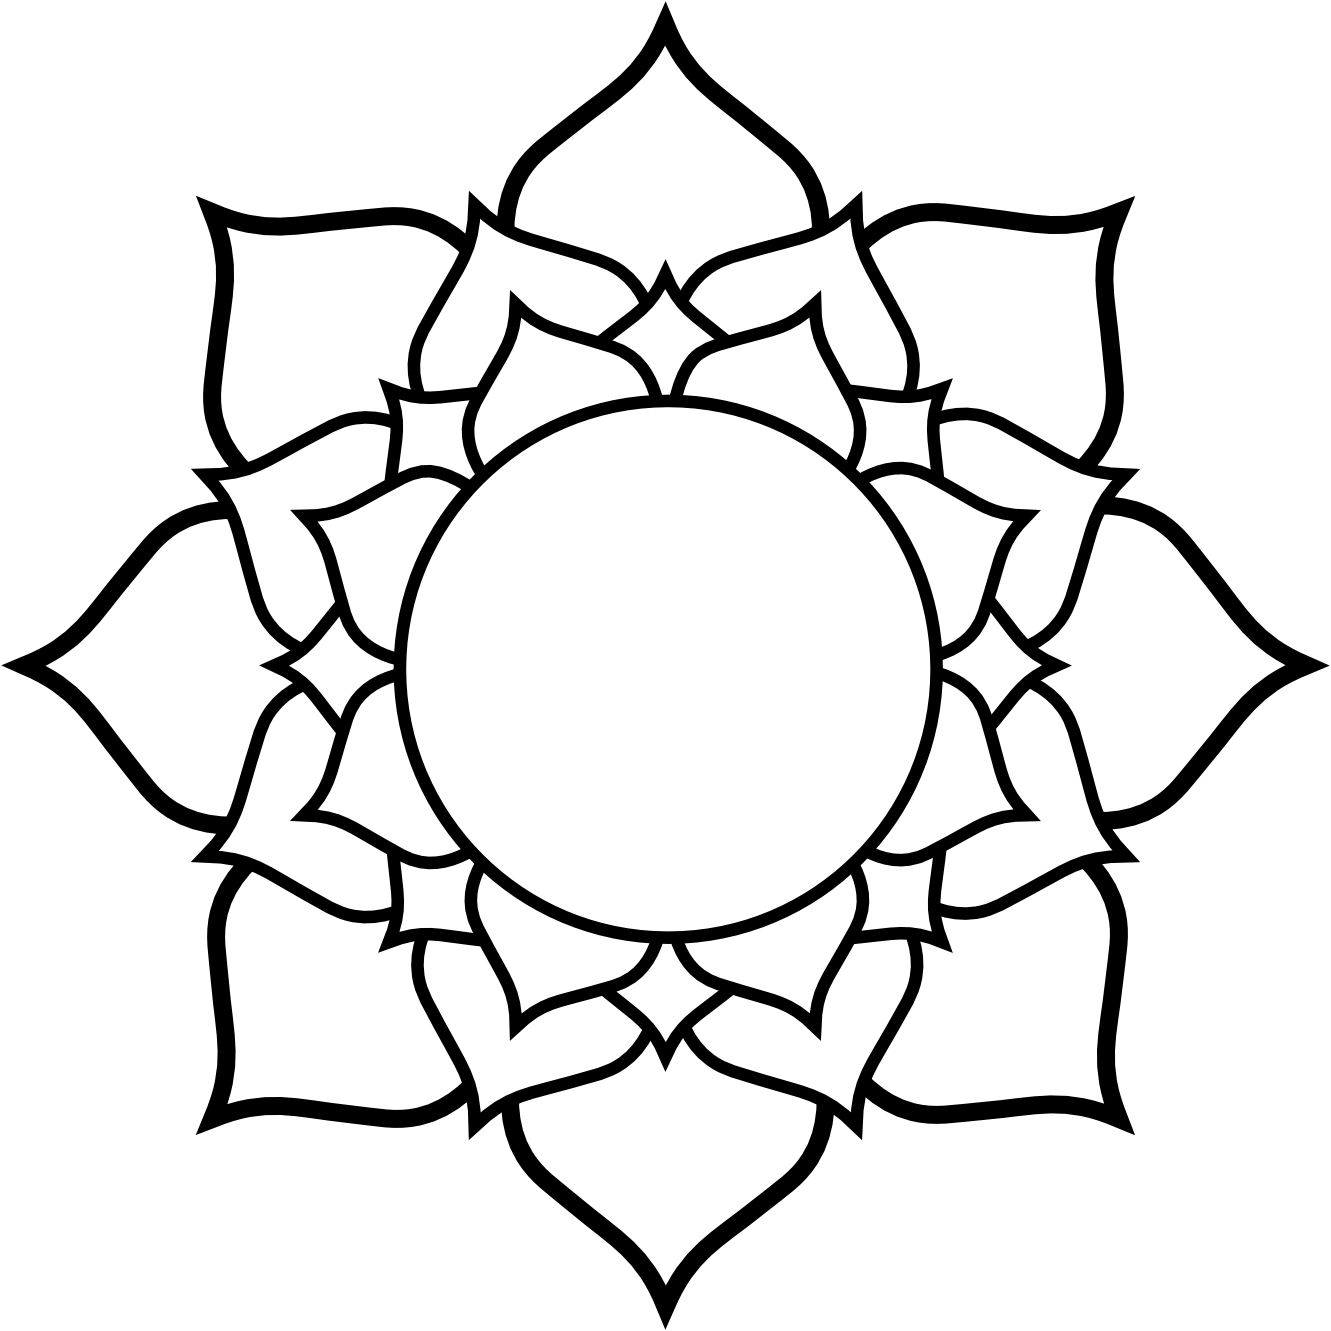 Free lotus drawing download. Mandala clipart outlined